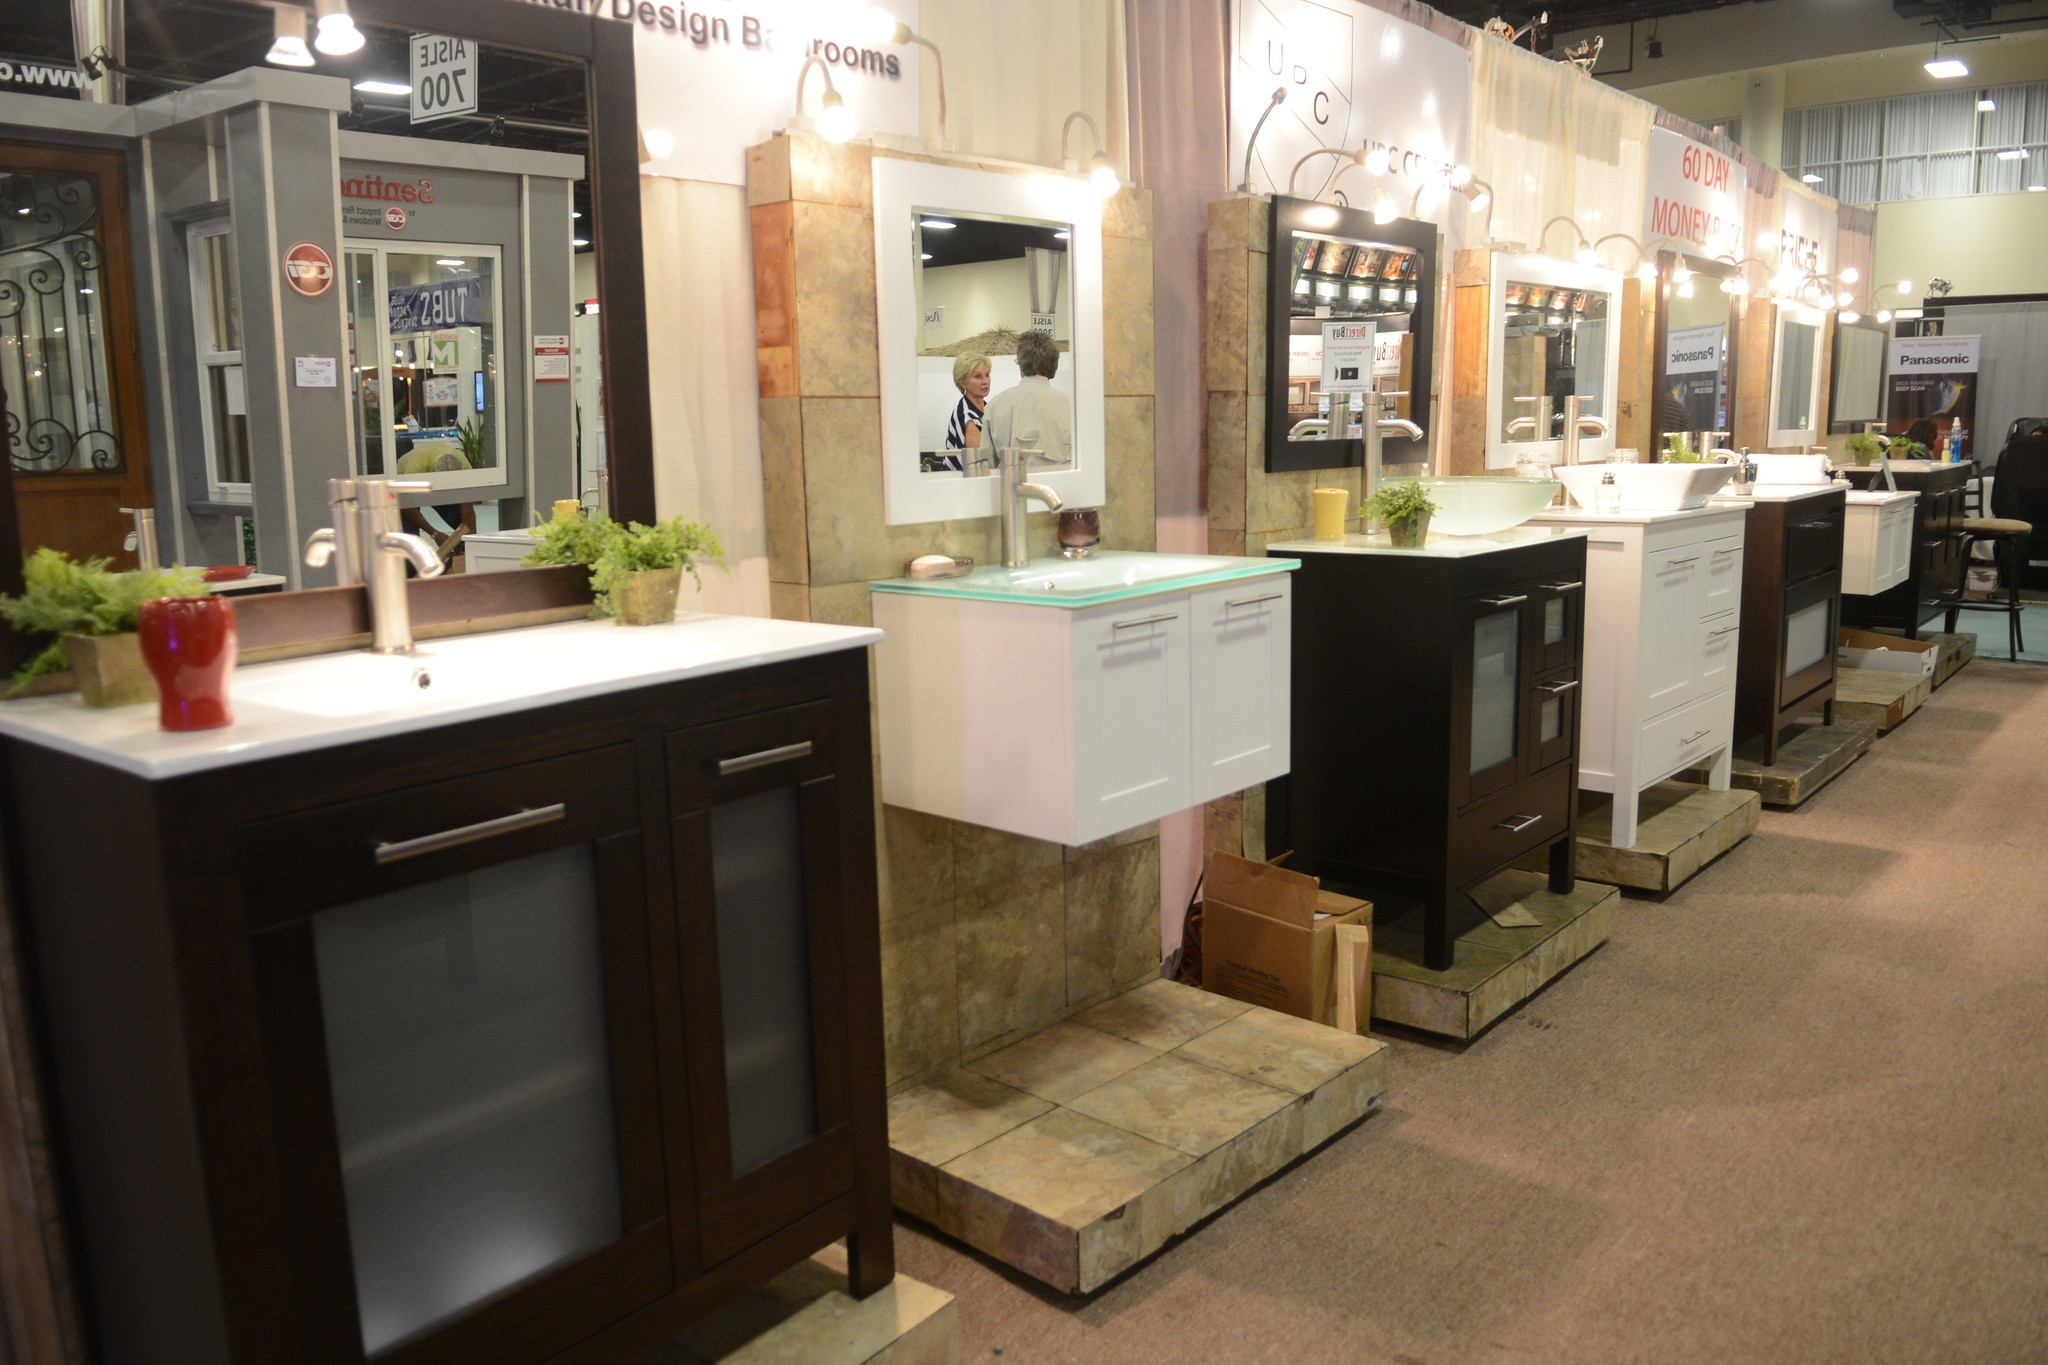 28 home design and remodeling show broward fort lauderdale home design and remodeling - Home design and remodeling show ...